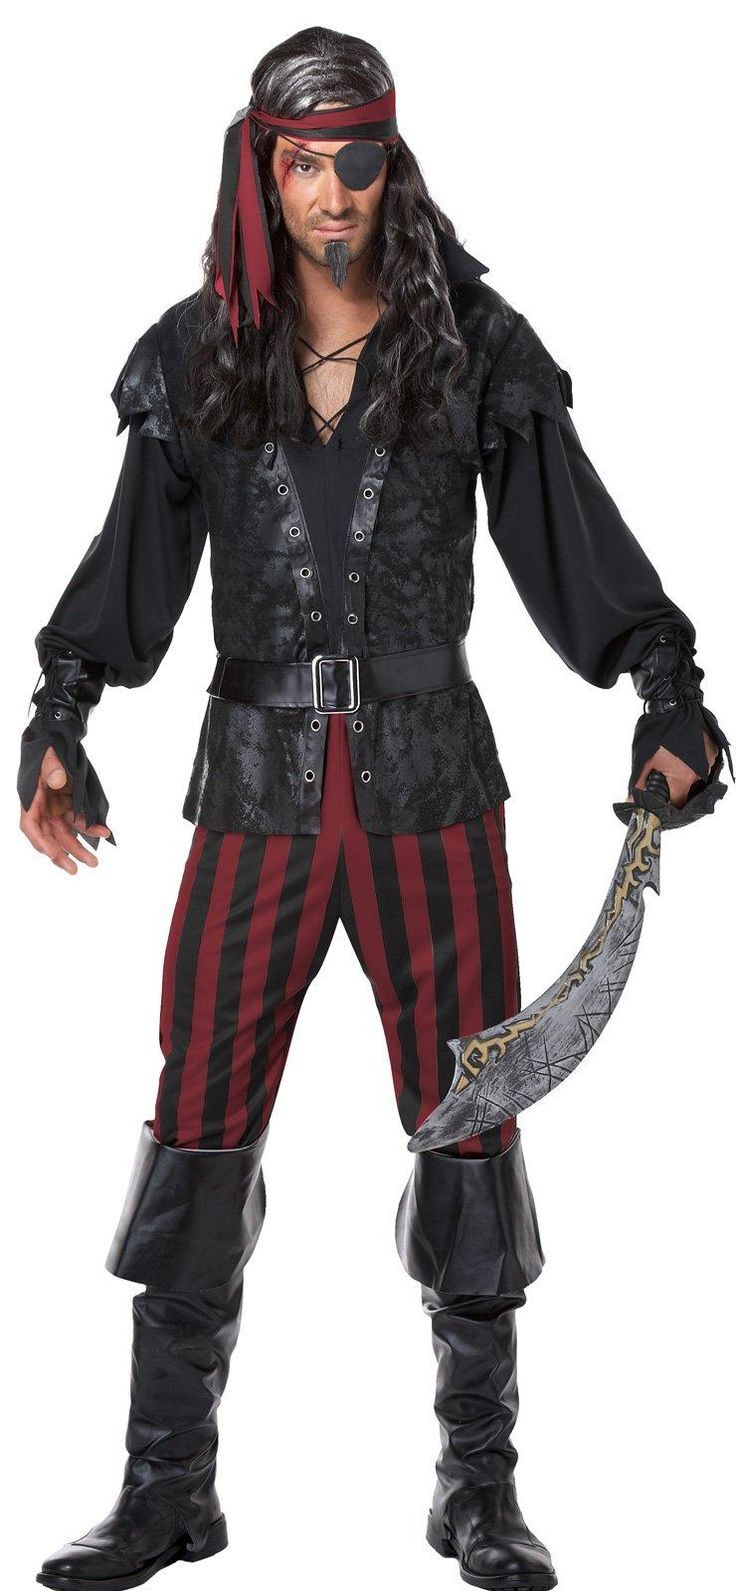 Target Costumes For Adults: Mens Ruthless Rogue Pirate Costume